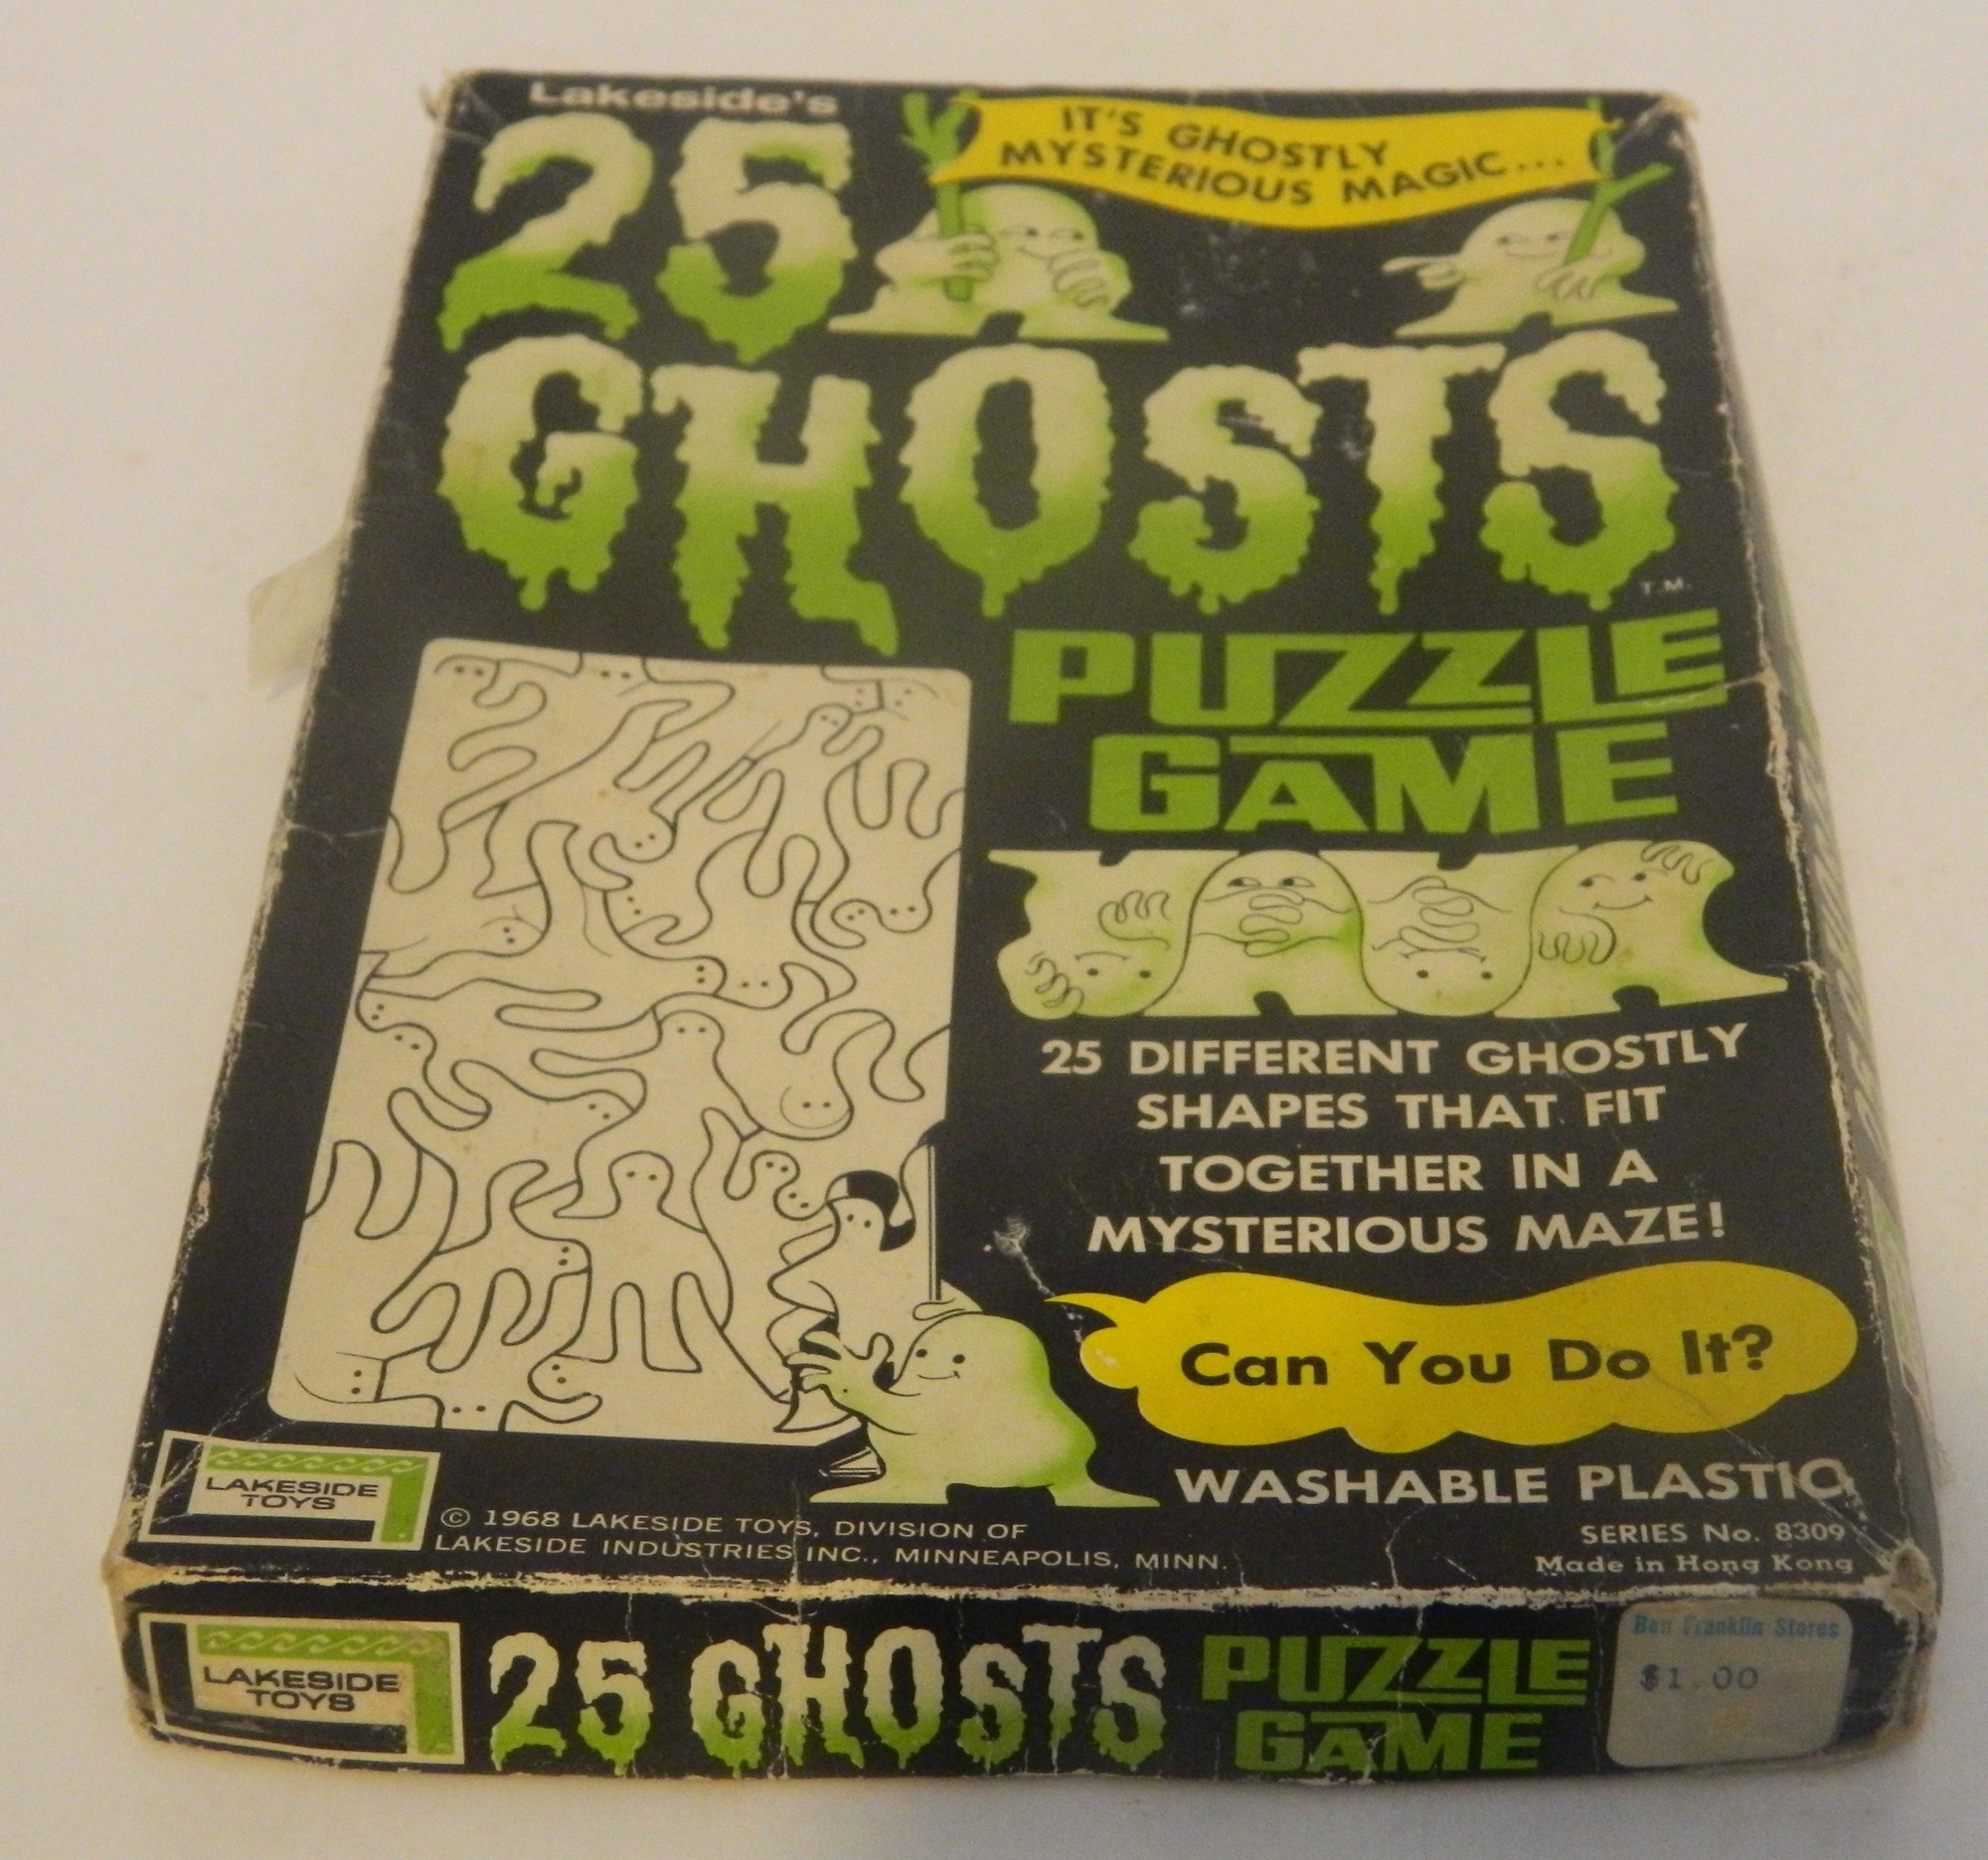 Box for 25 Ghosts Puzzle Game